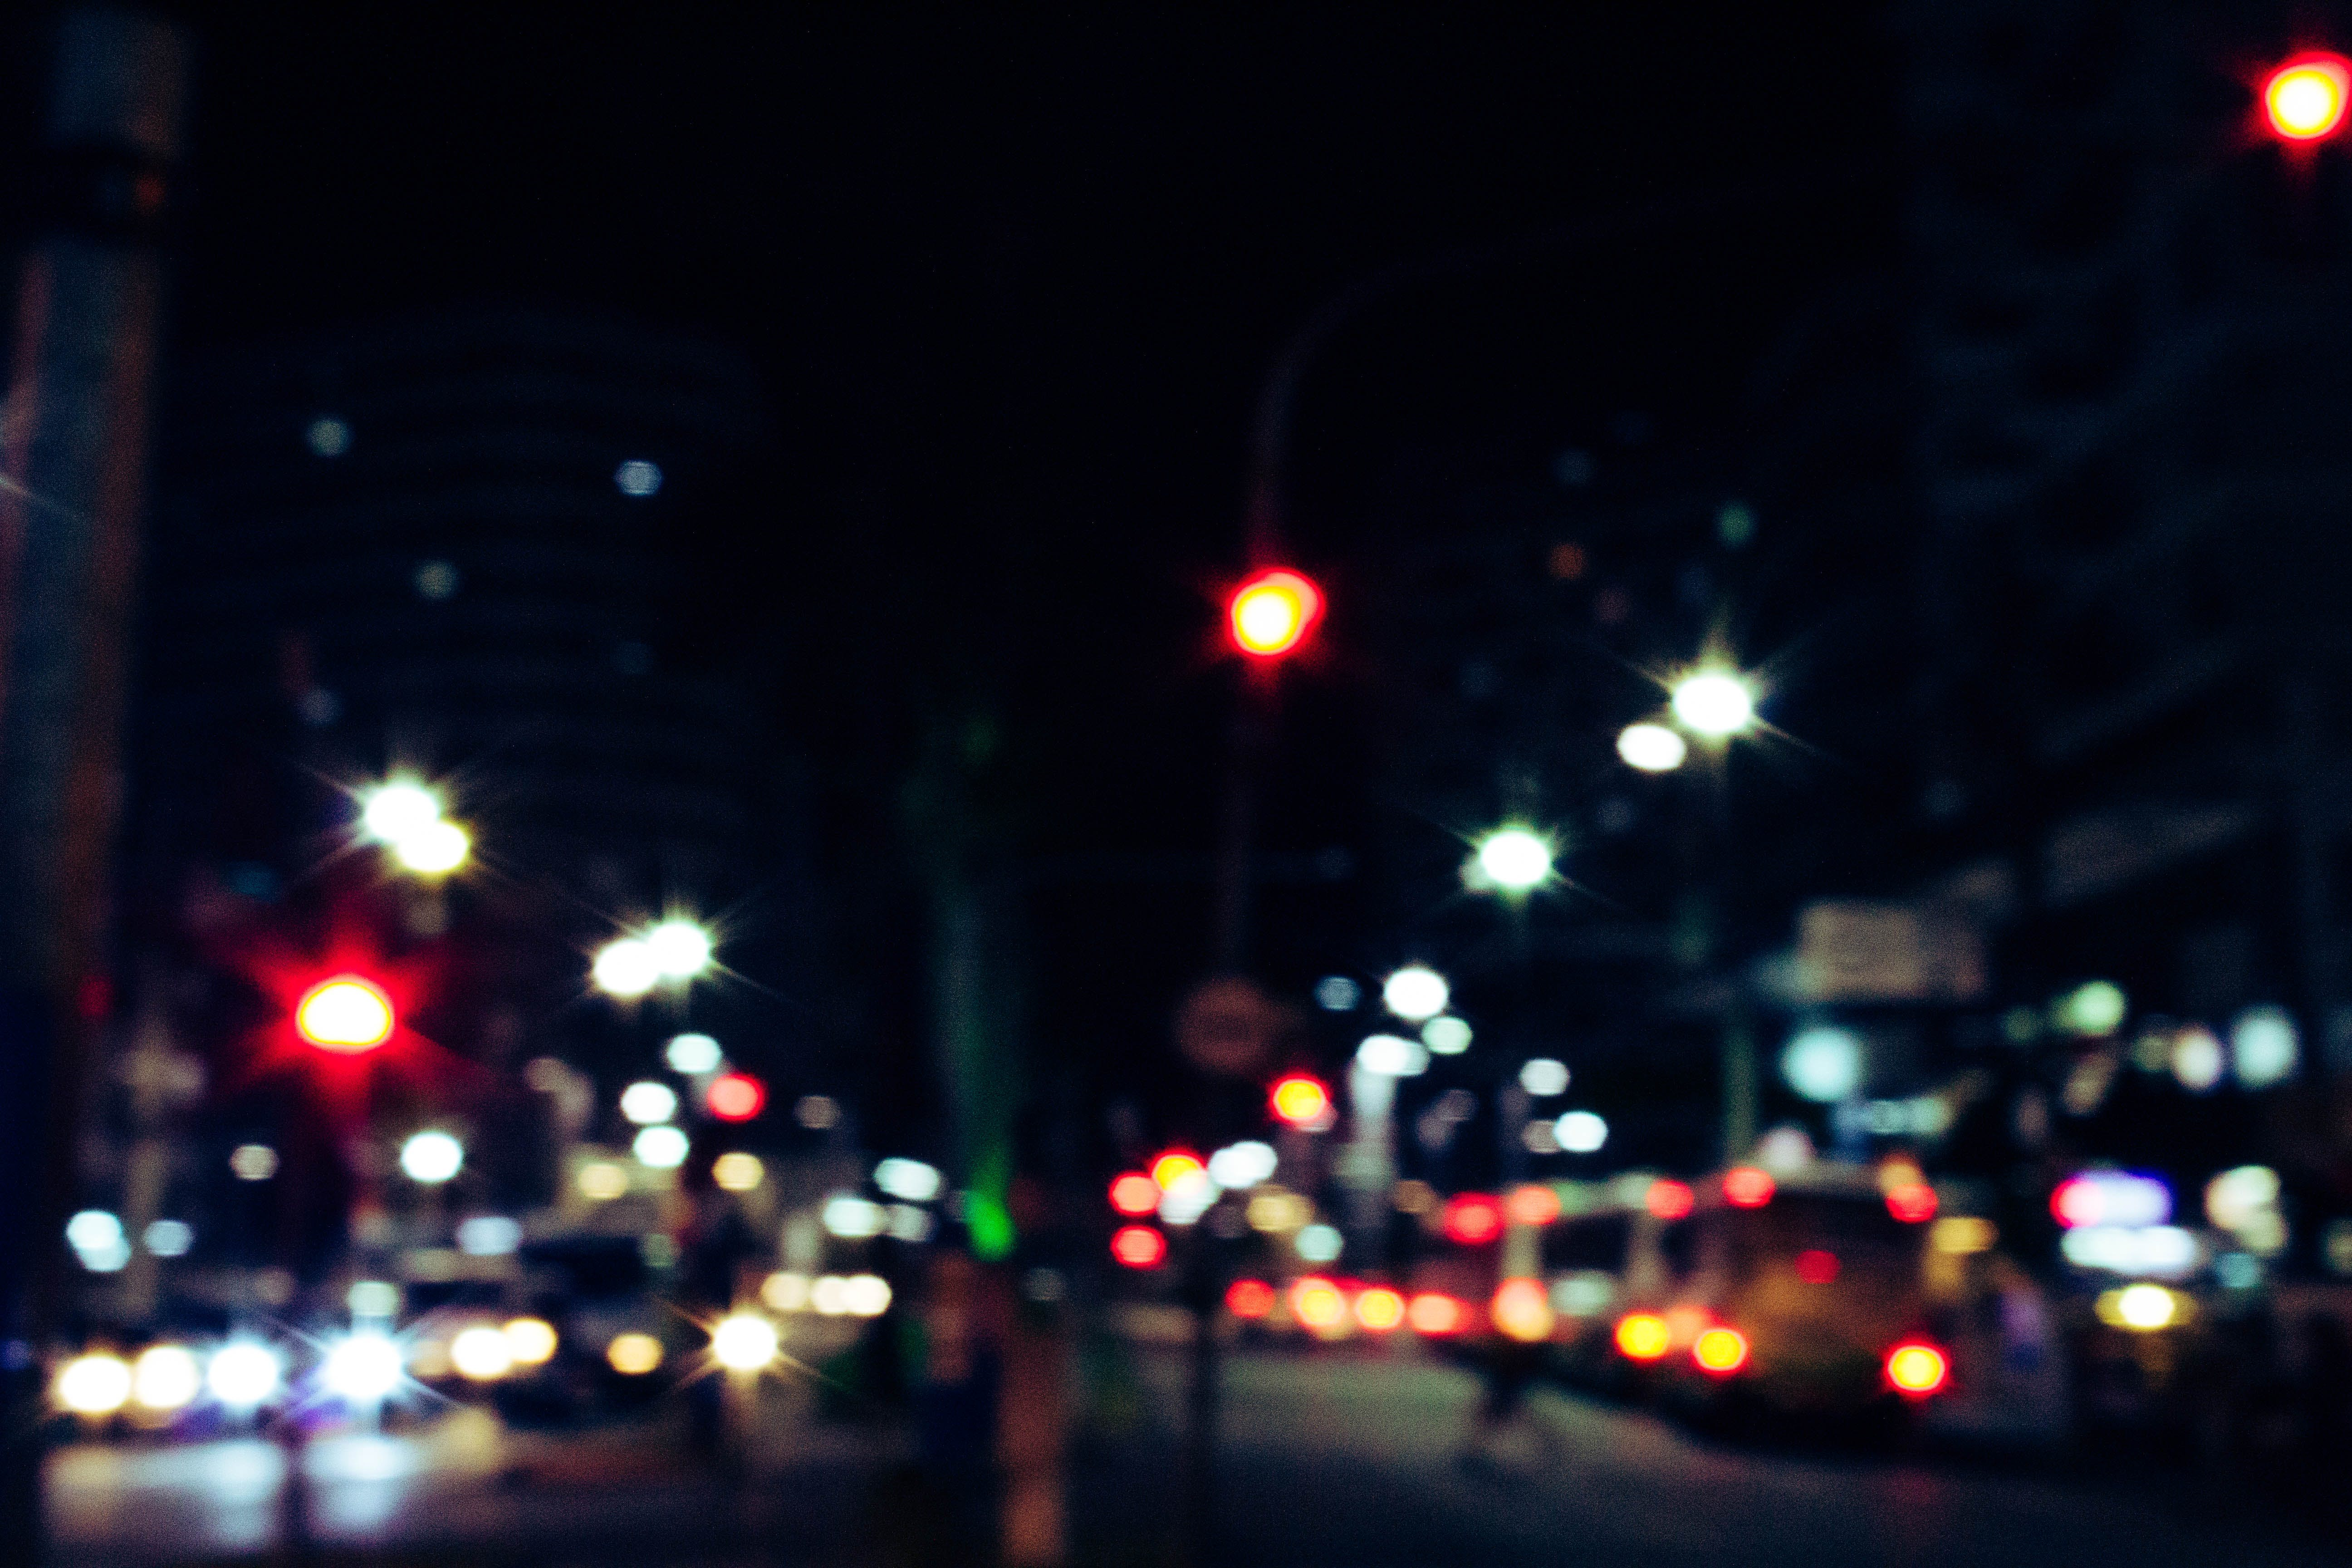 Bokeh Photography of Street Full of Vehicles at Night